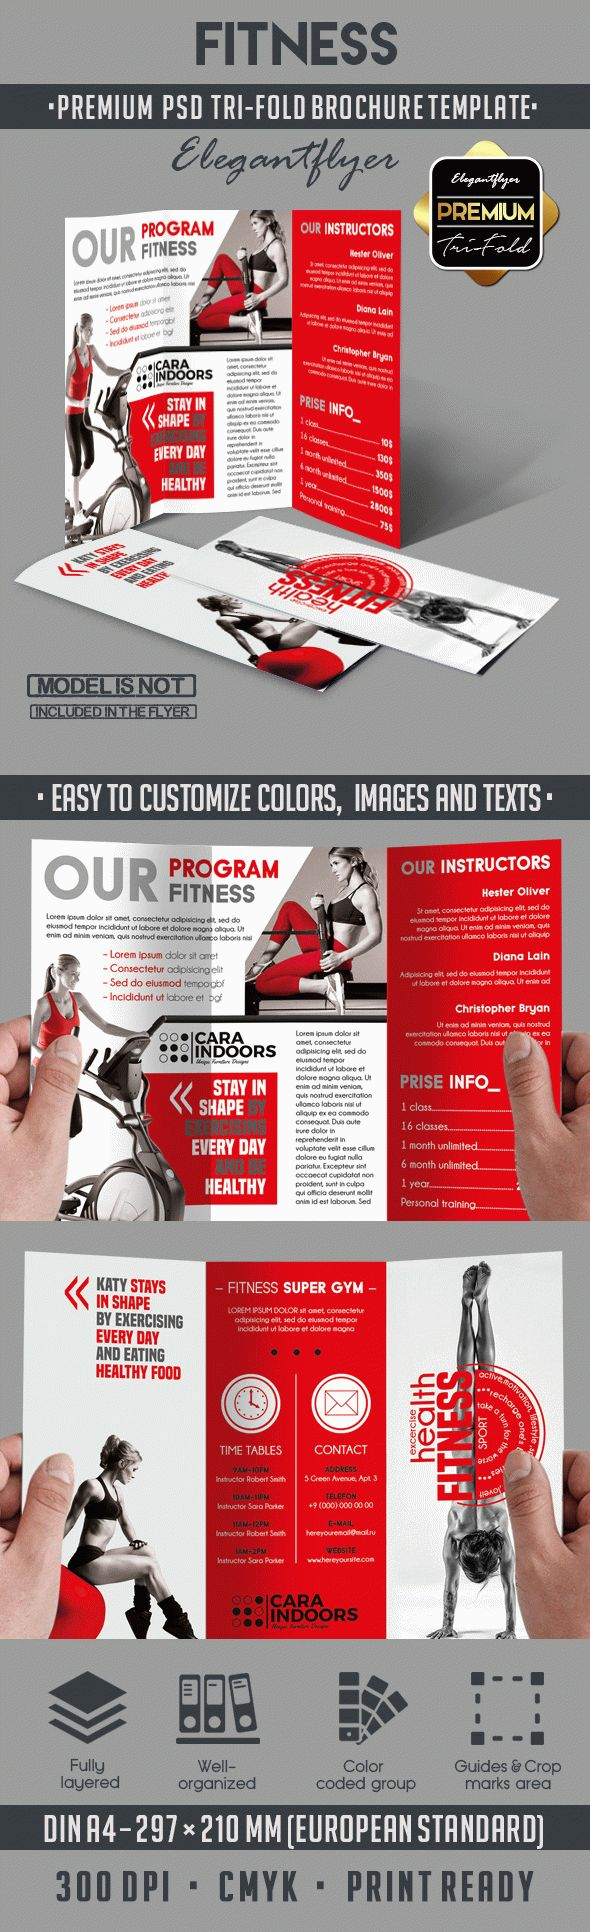 Tri fold brochure template for fitness by elegantflyer for Fitness brochure template